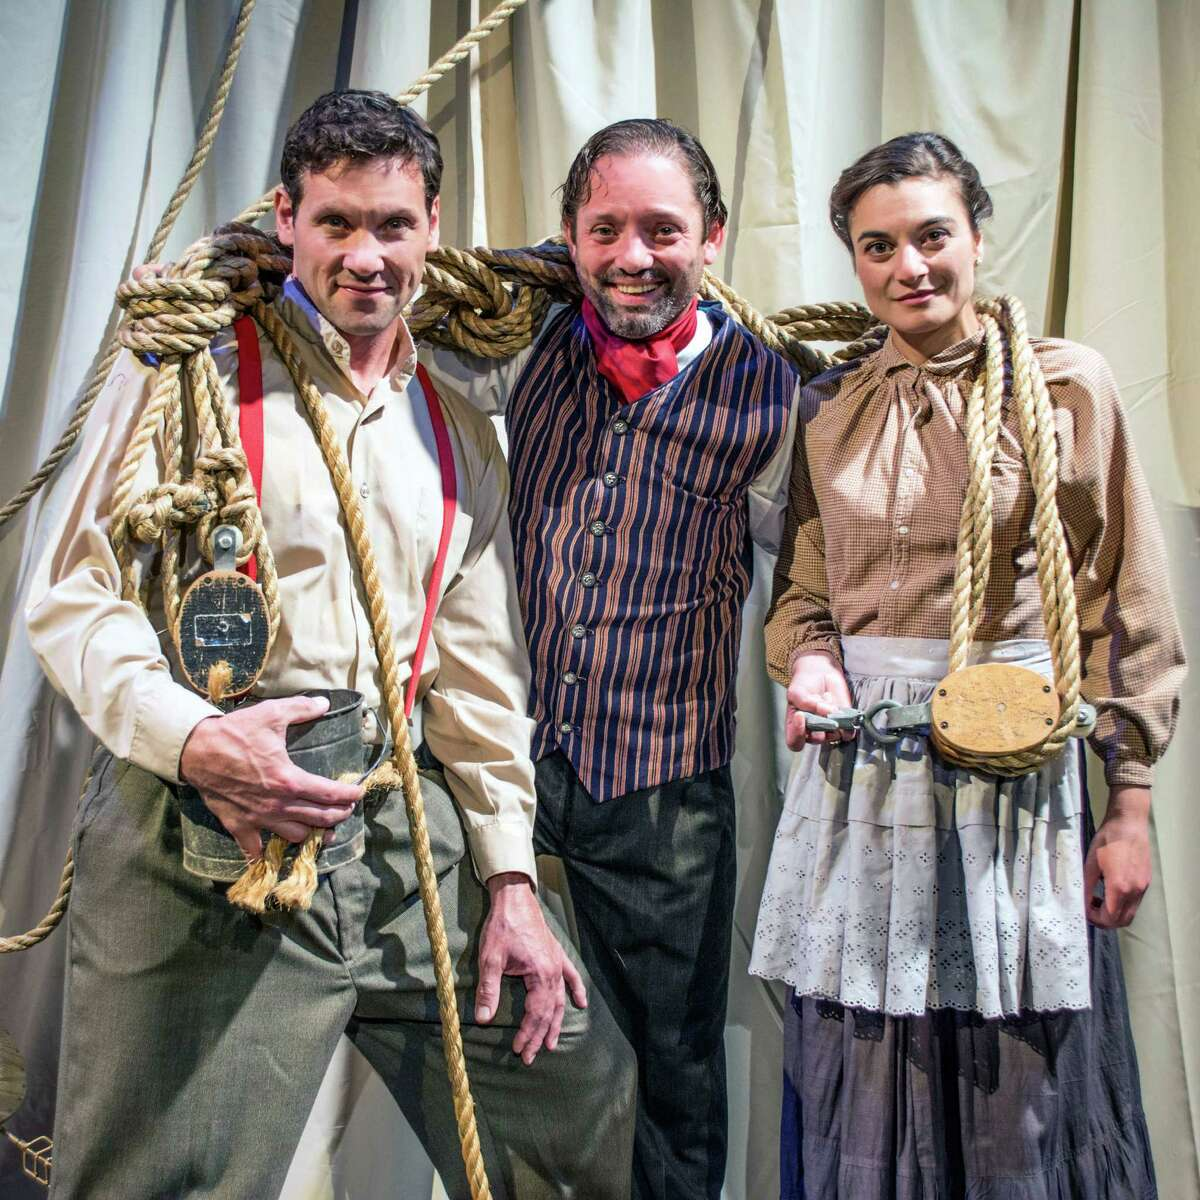 From left: Tim Dugan, David Girard and Jennifer Scapetis-Tycer in ?Shipwrecked? at Saratoga Shakespeare Company. (SSC publicity photo)